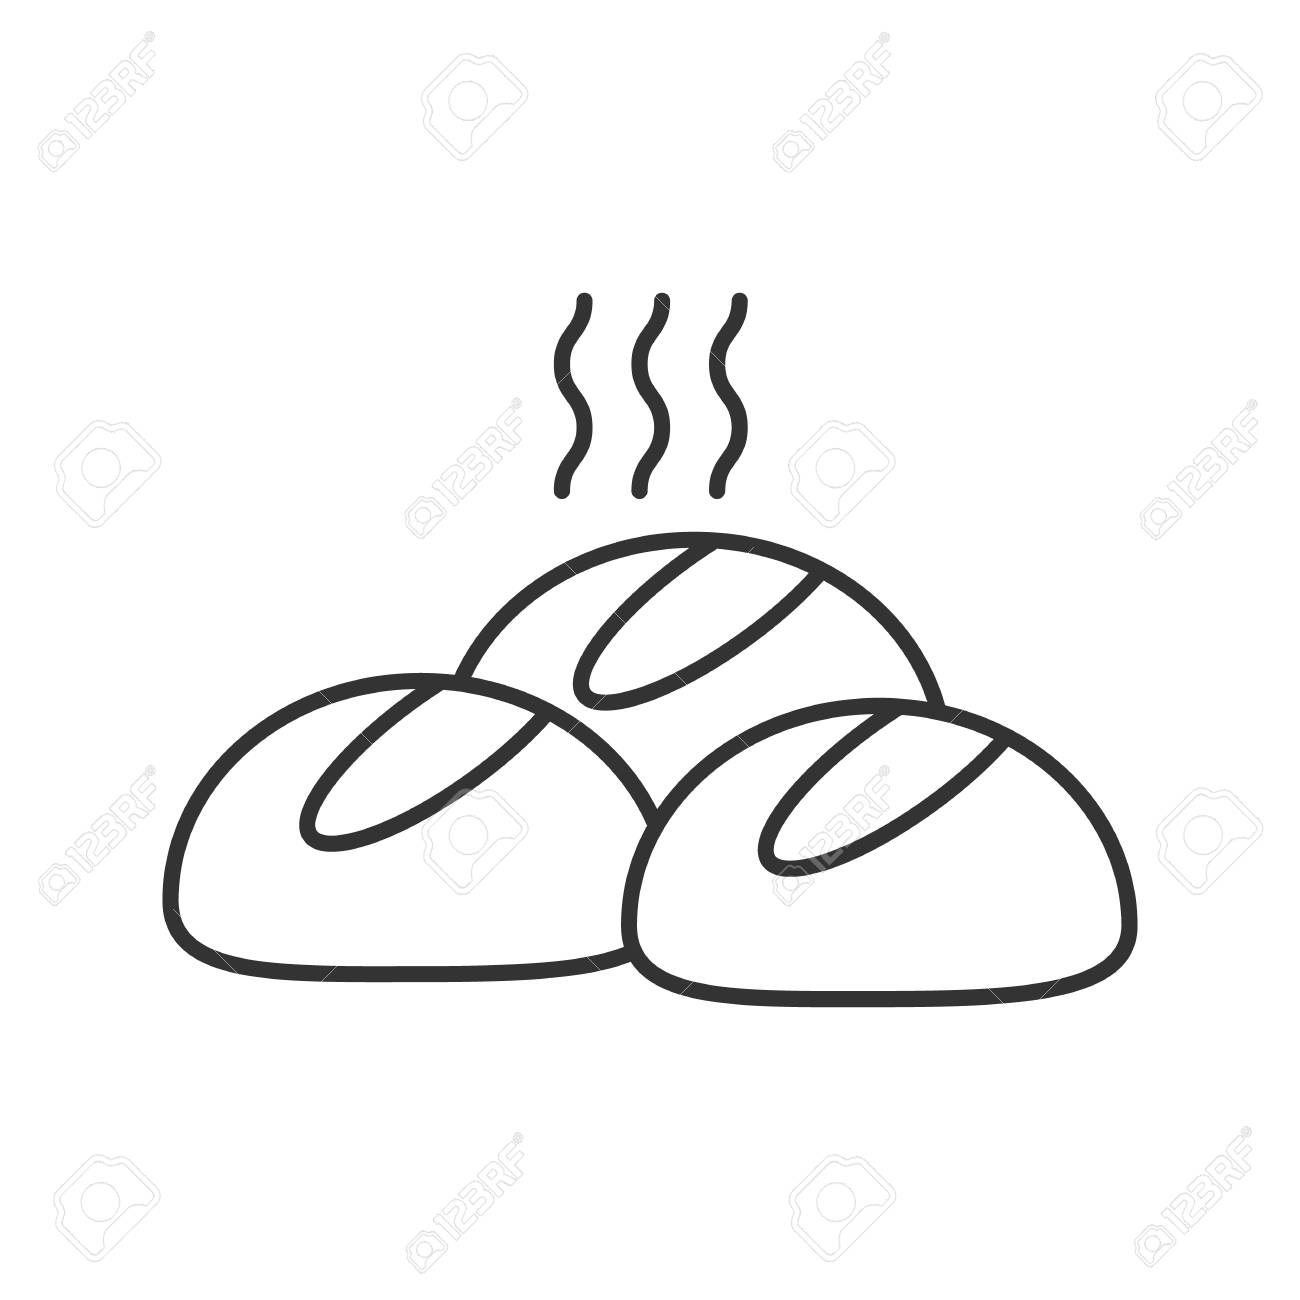 Dinner rolls linear icon. Thin line illustration. Round buns.